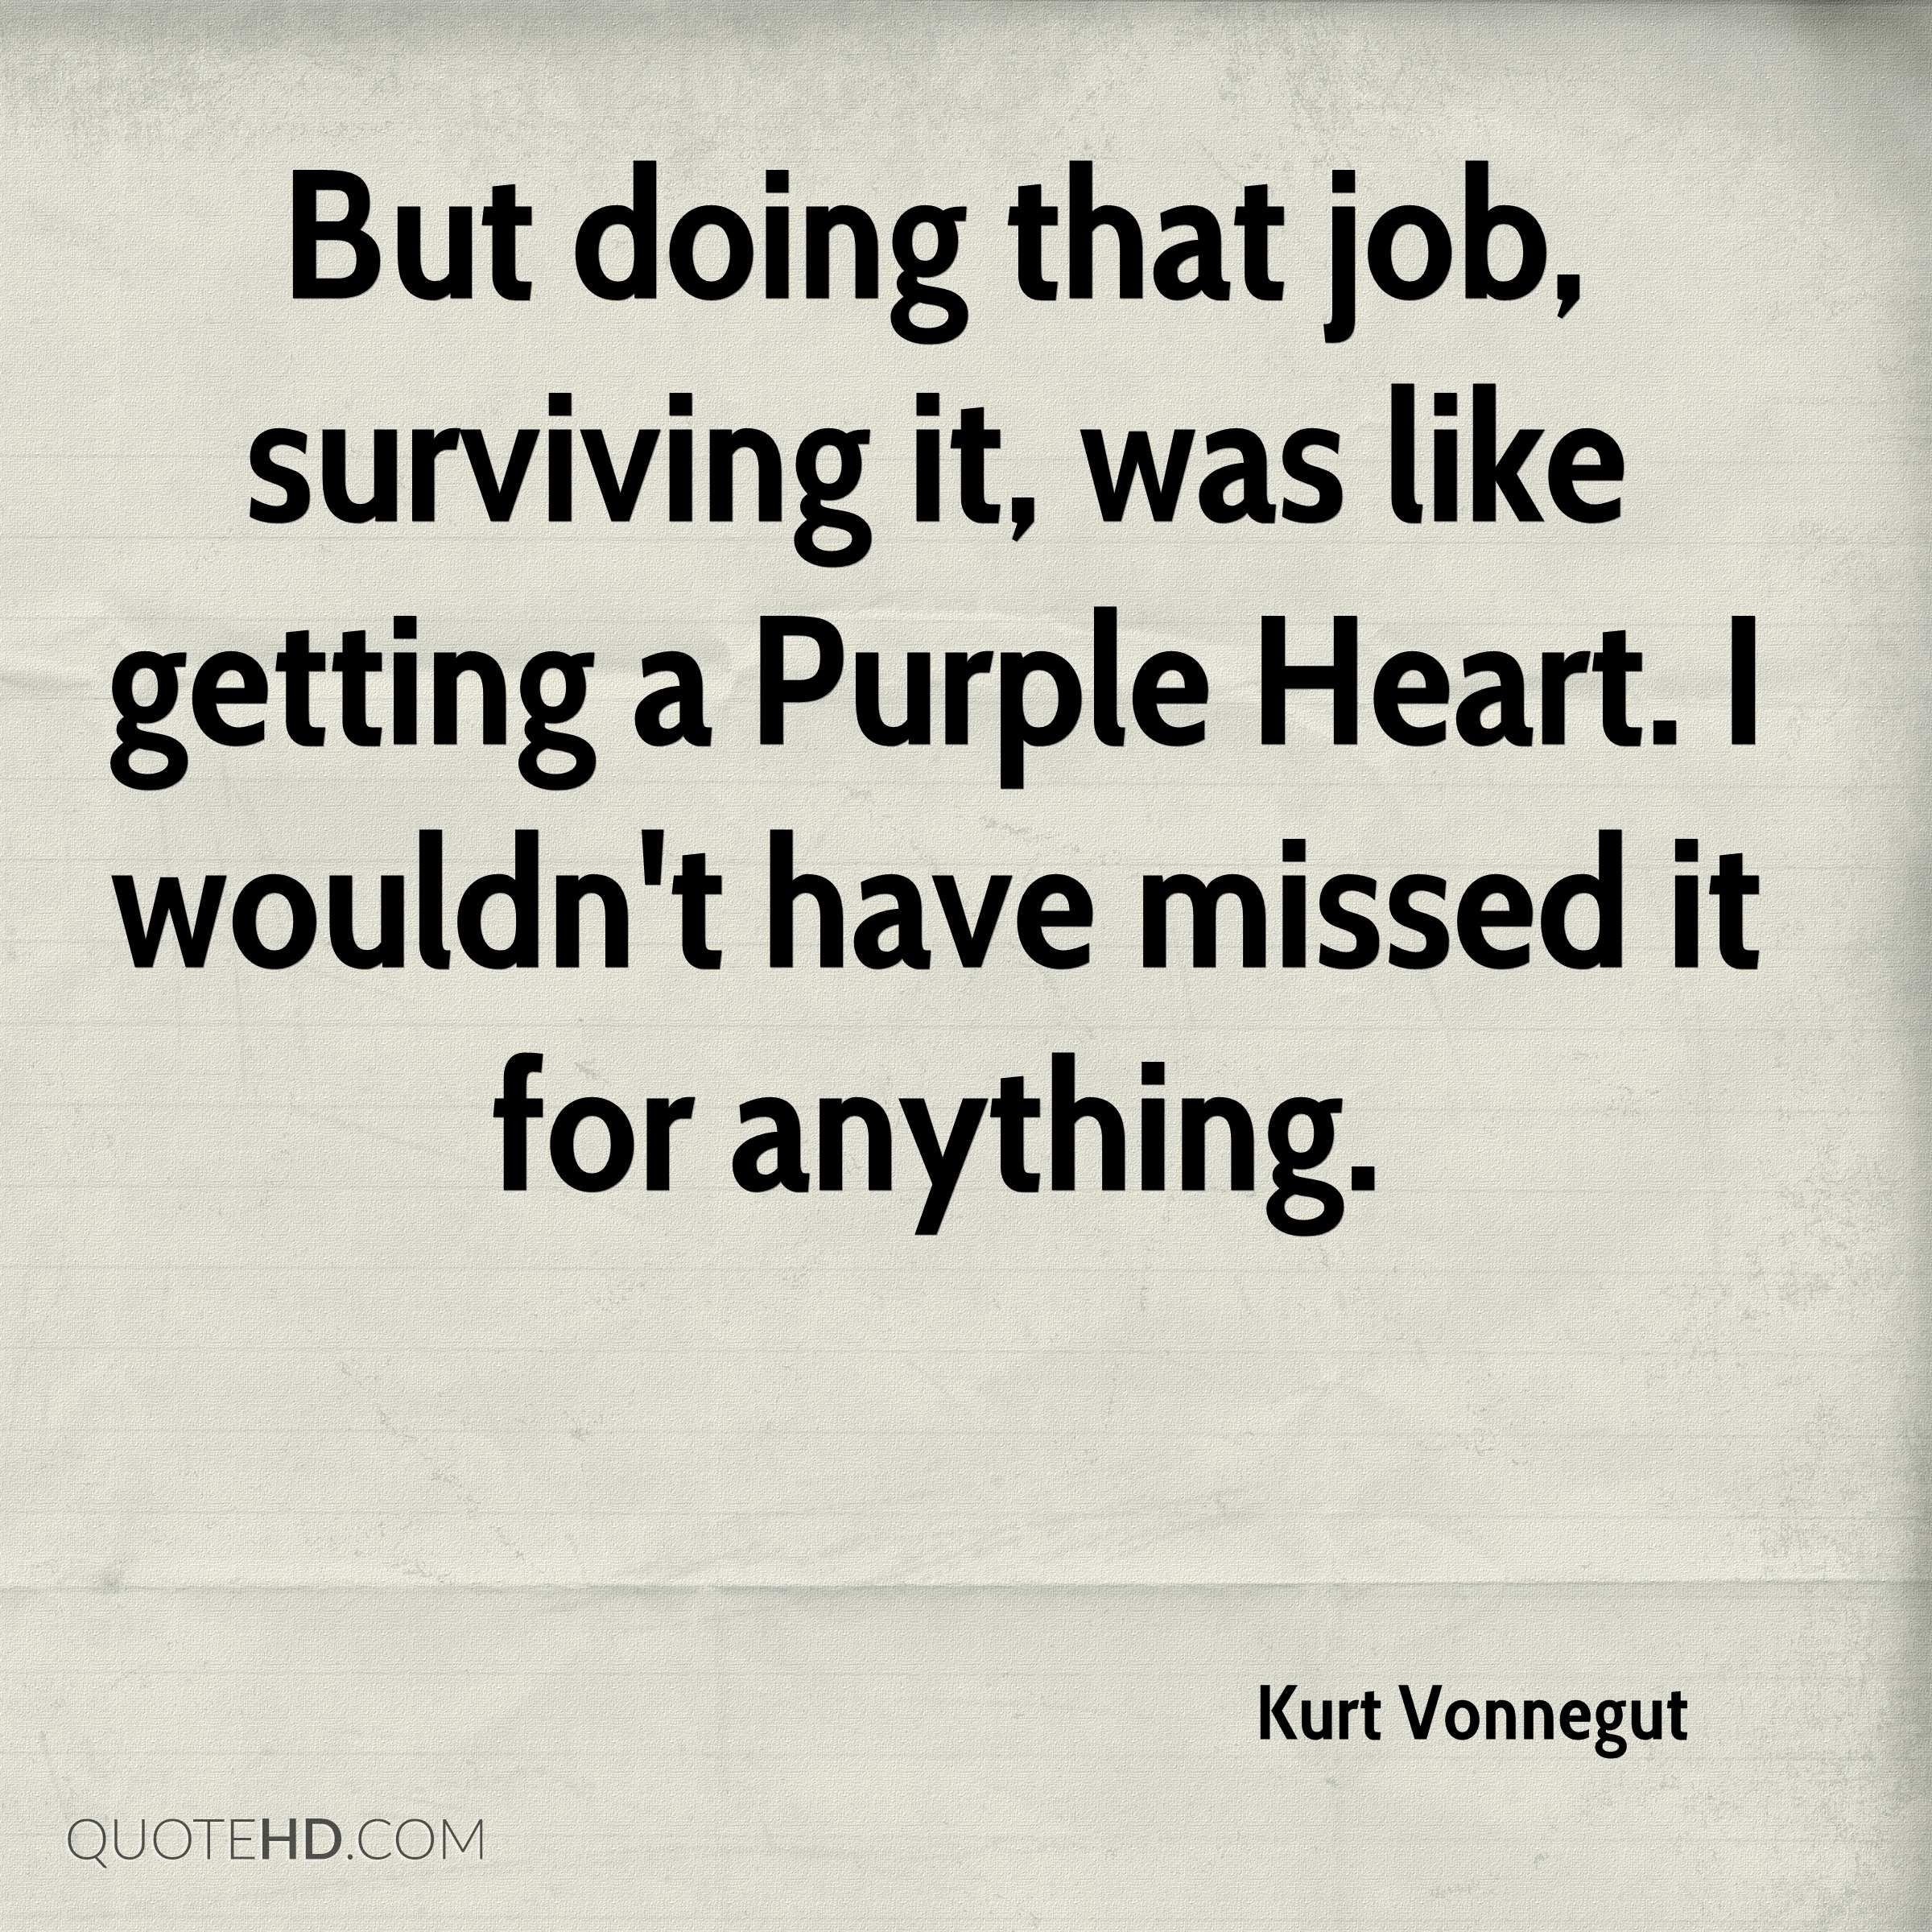 But doing that job, surviving it, was like getting a Purple Heart. I wouldn't have missed it for anything.